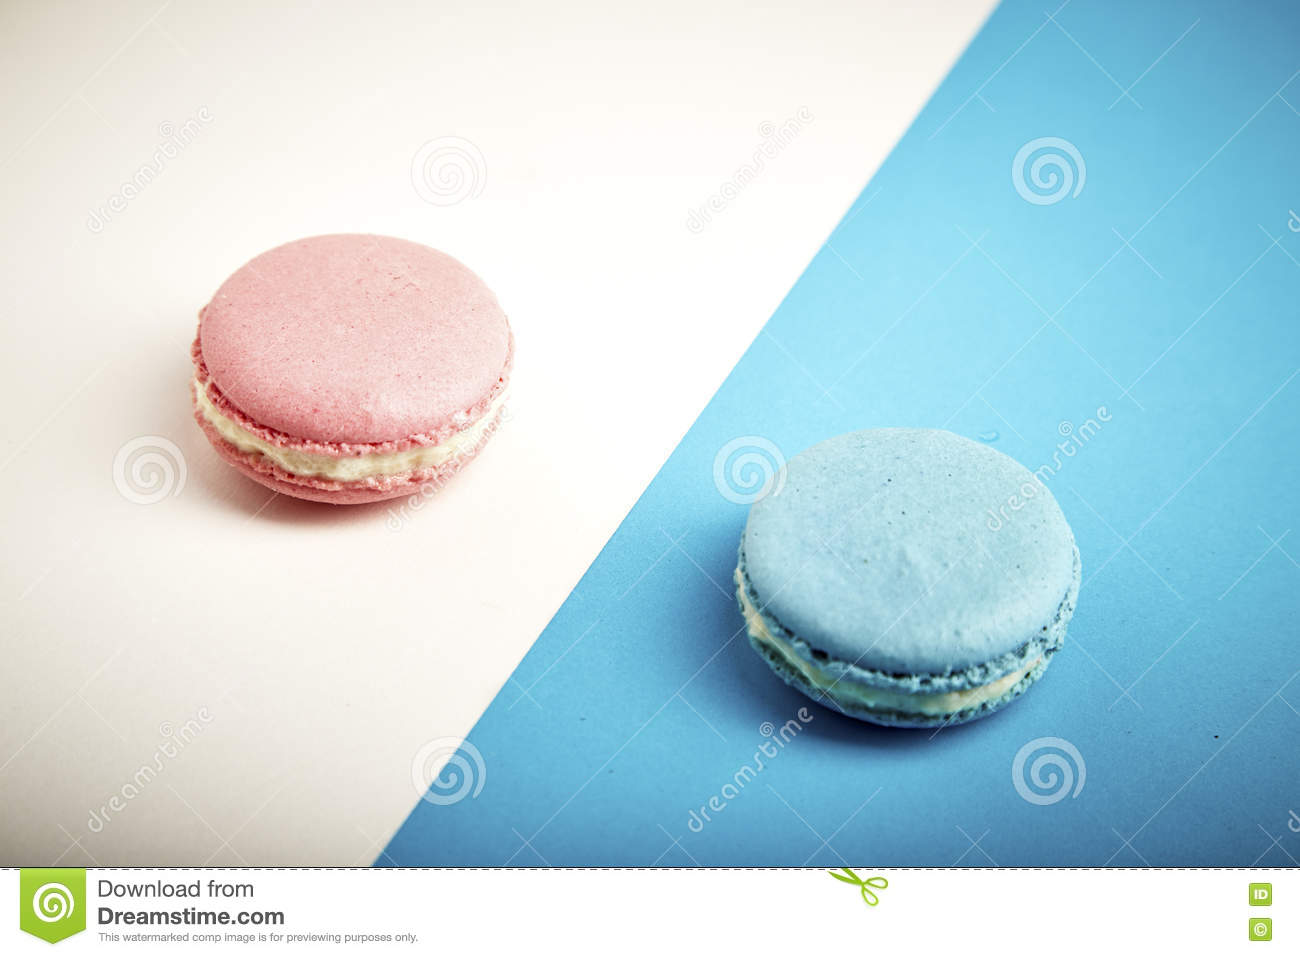 colorful macaron pink and blue macaron stock photo - image: 72643543